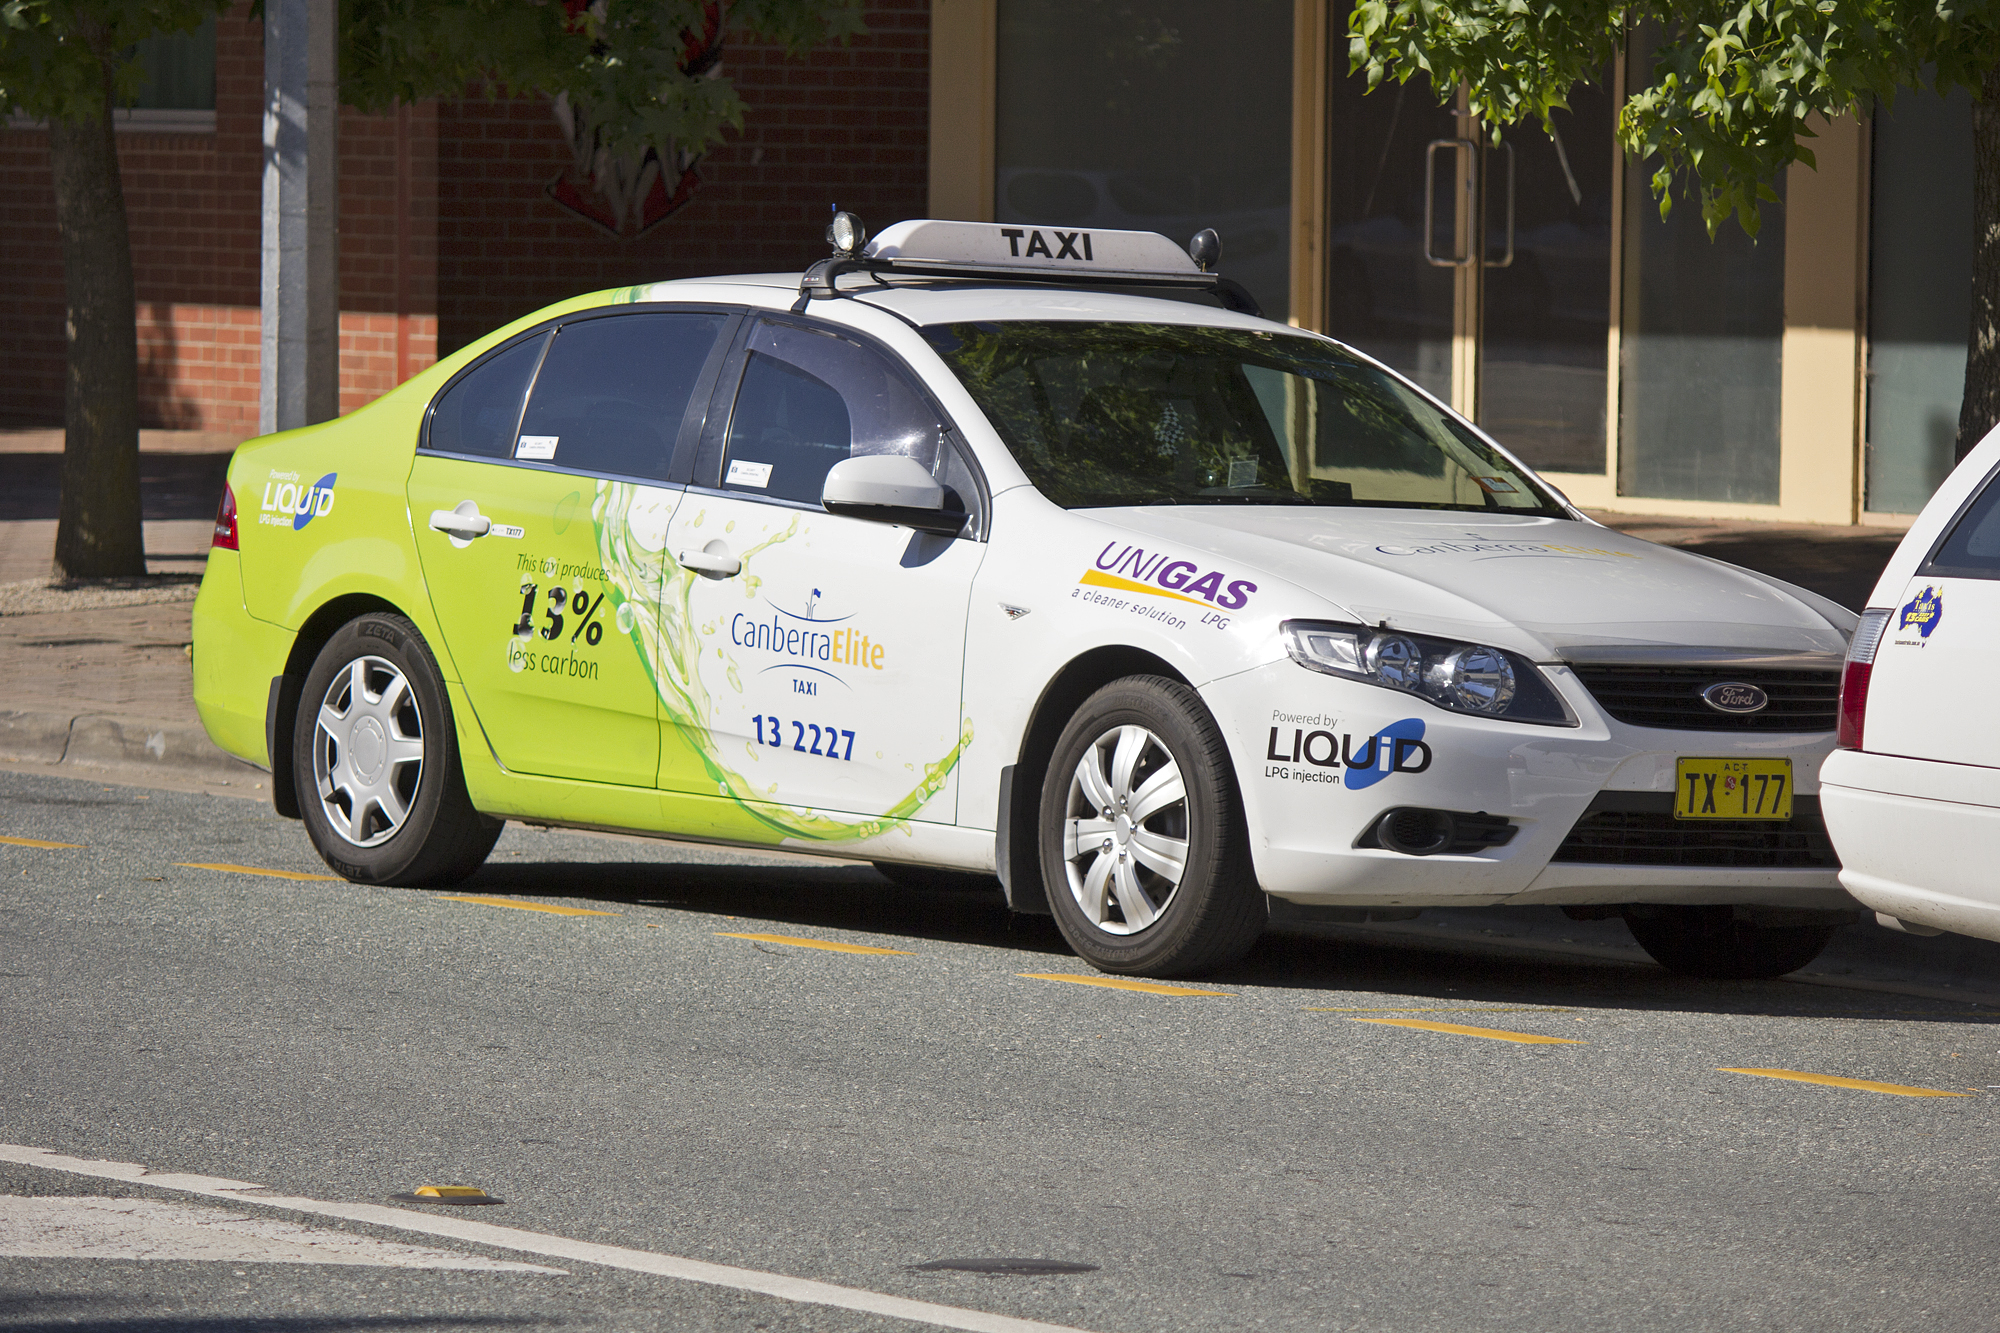 File:Ford FG Falcon running on LPG, operated by Canberra Elite Taxi, photographed